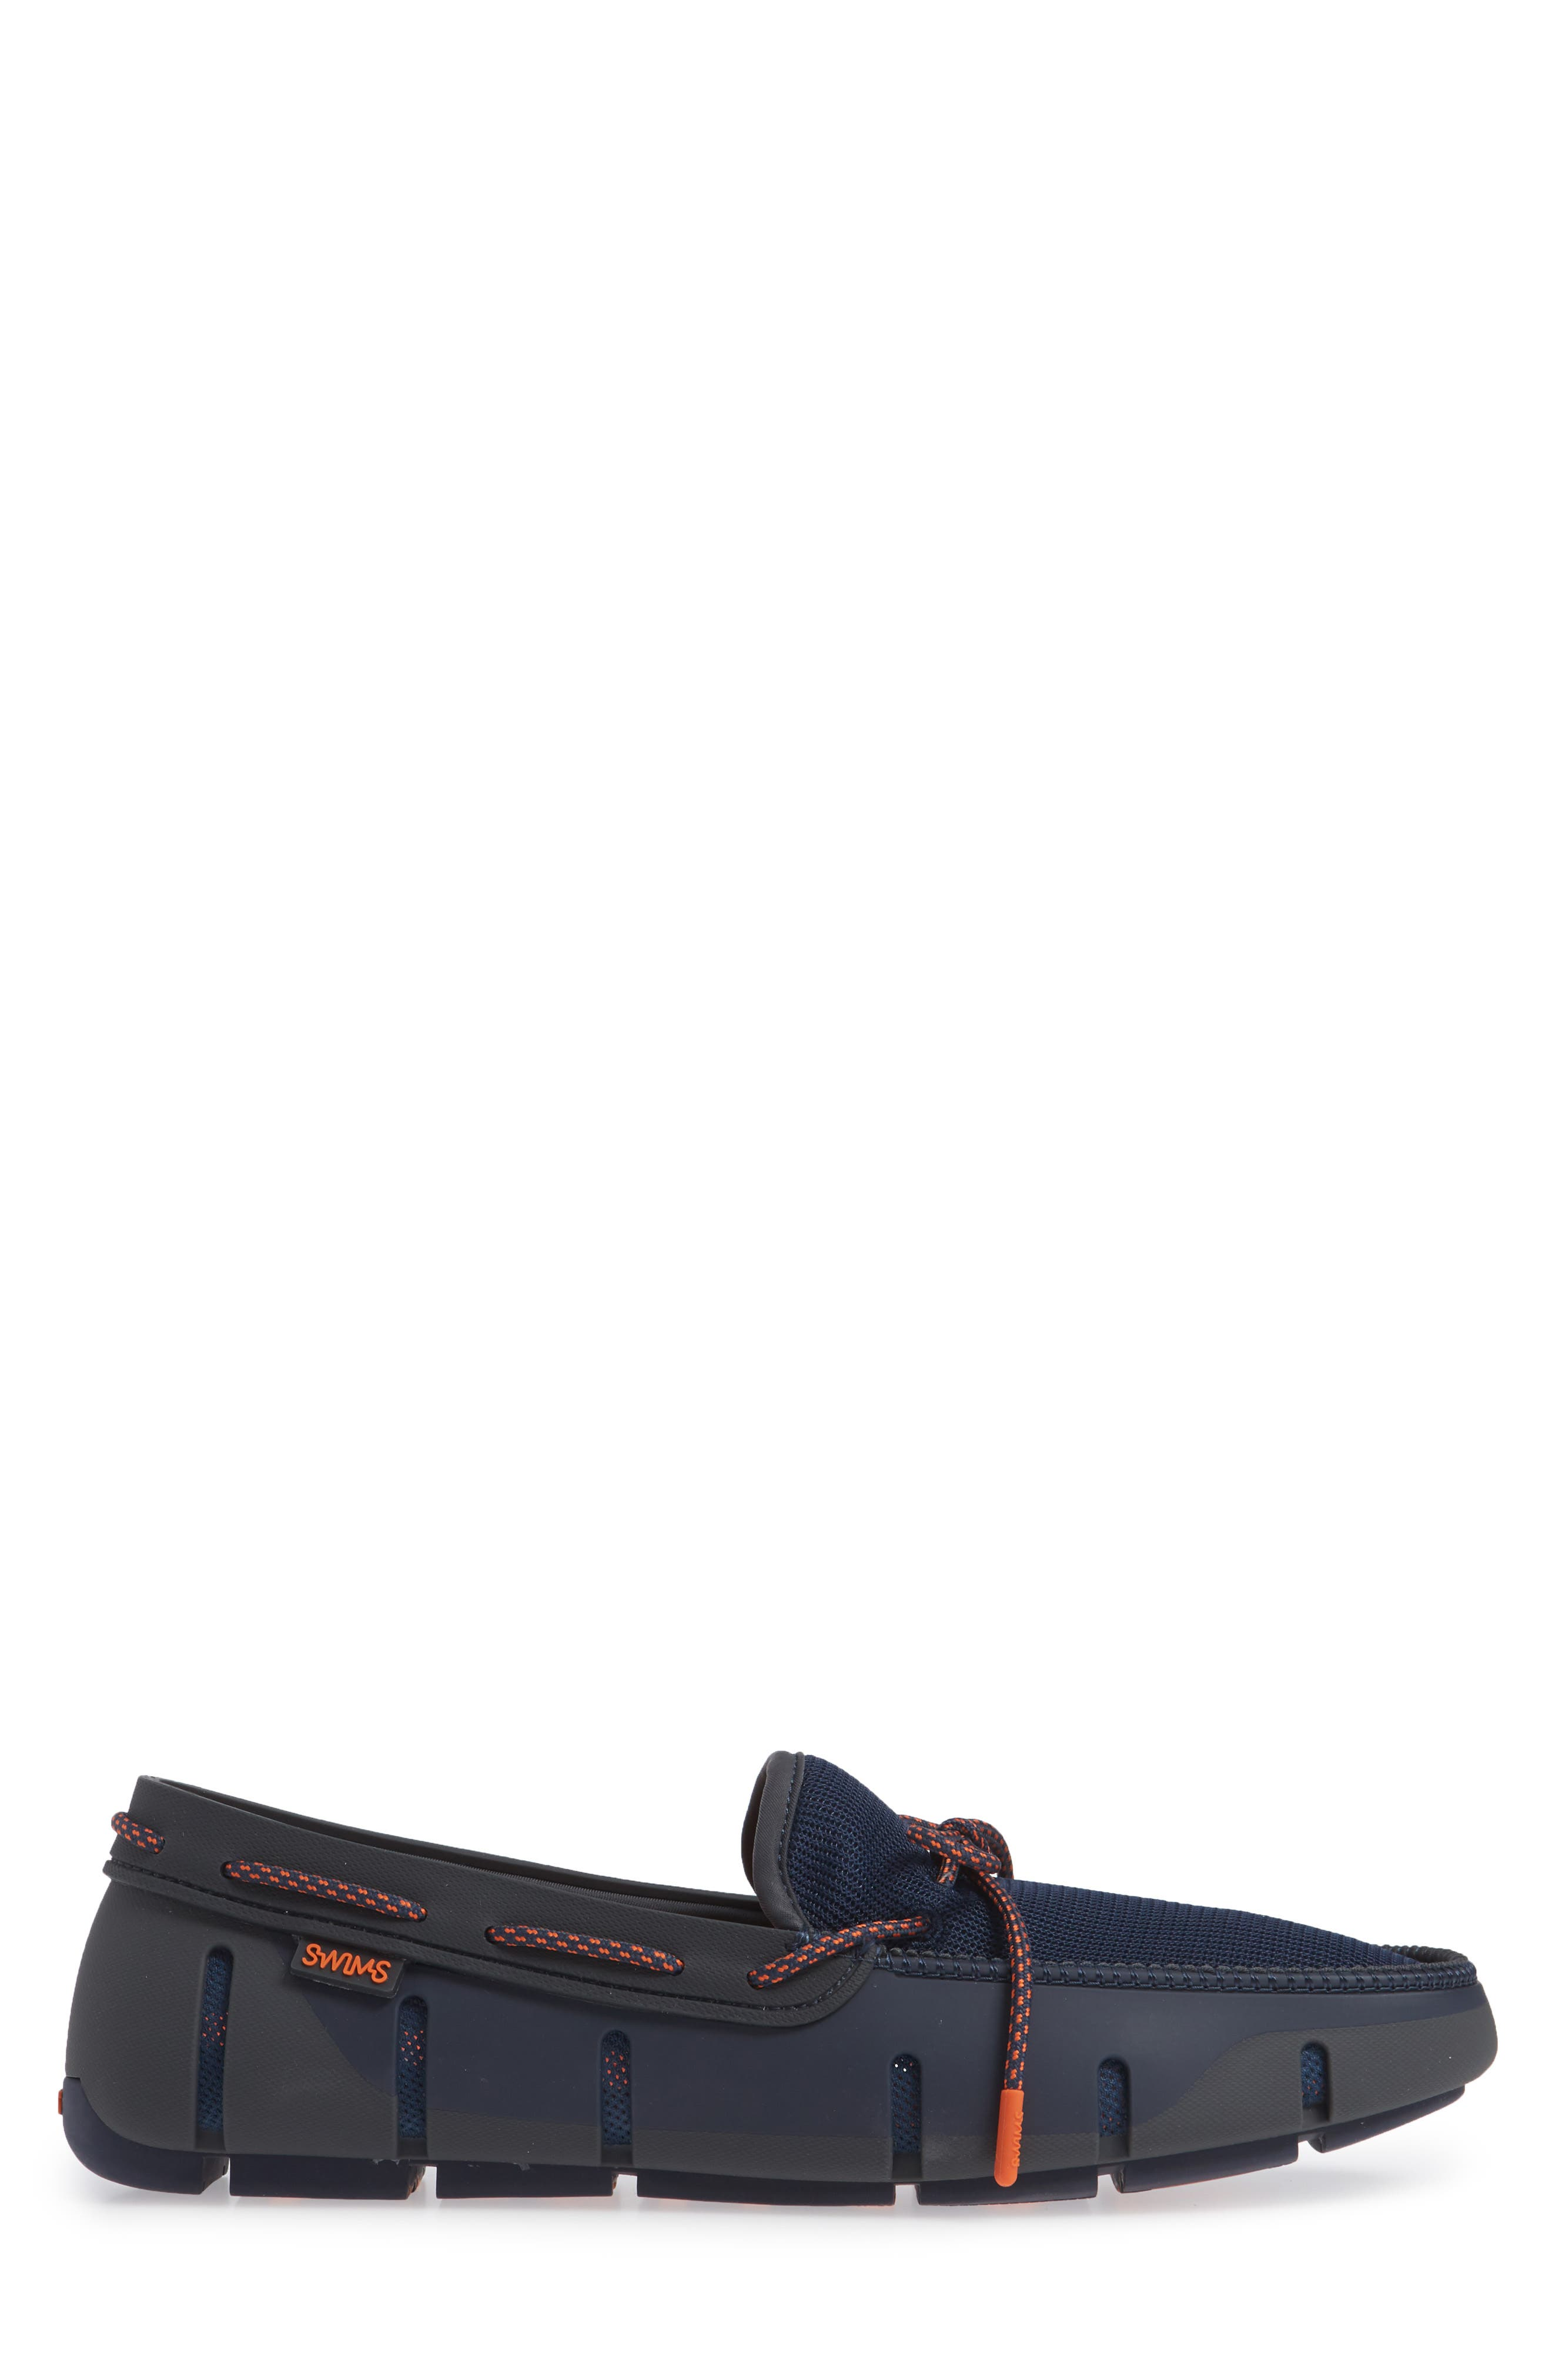 Stride Lace Loafer,                             Alternate thumbnail 5, color,                             Navy/ Dark Gray